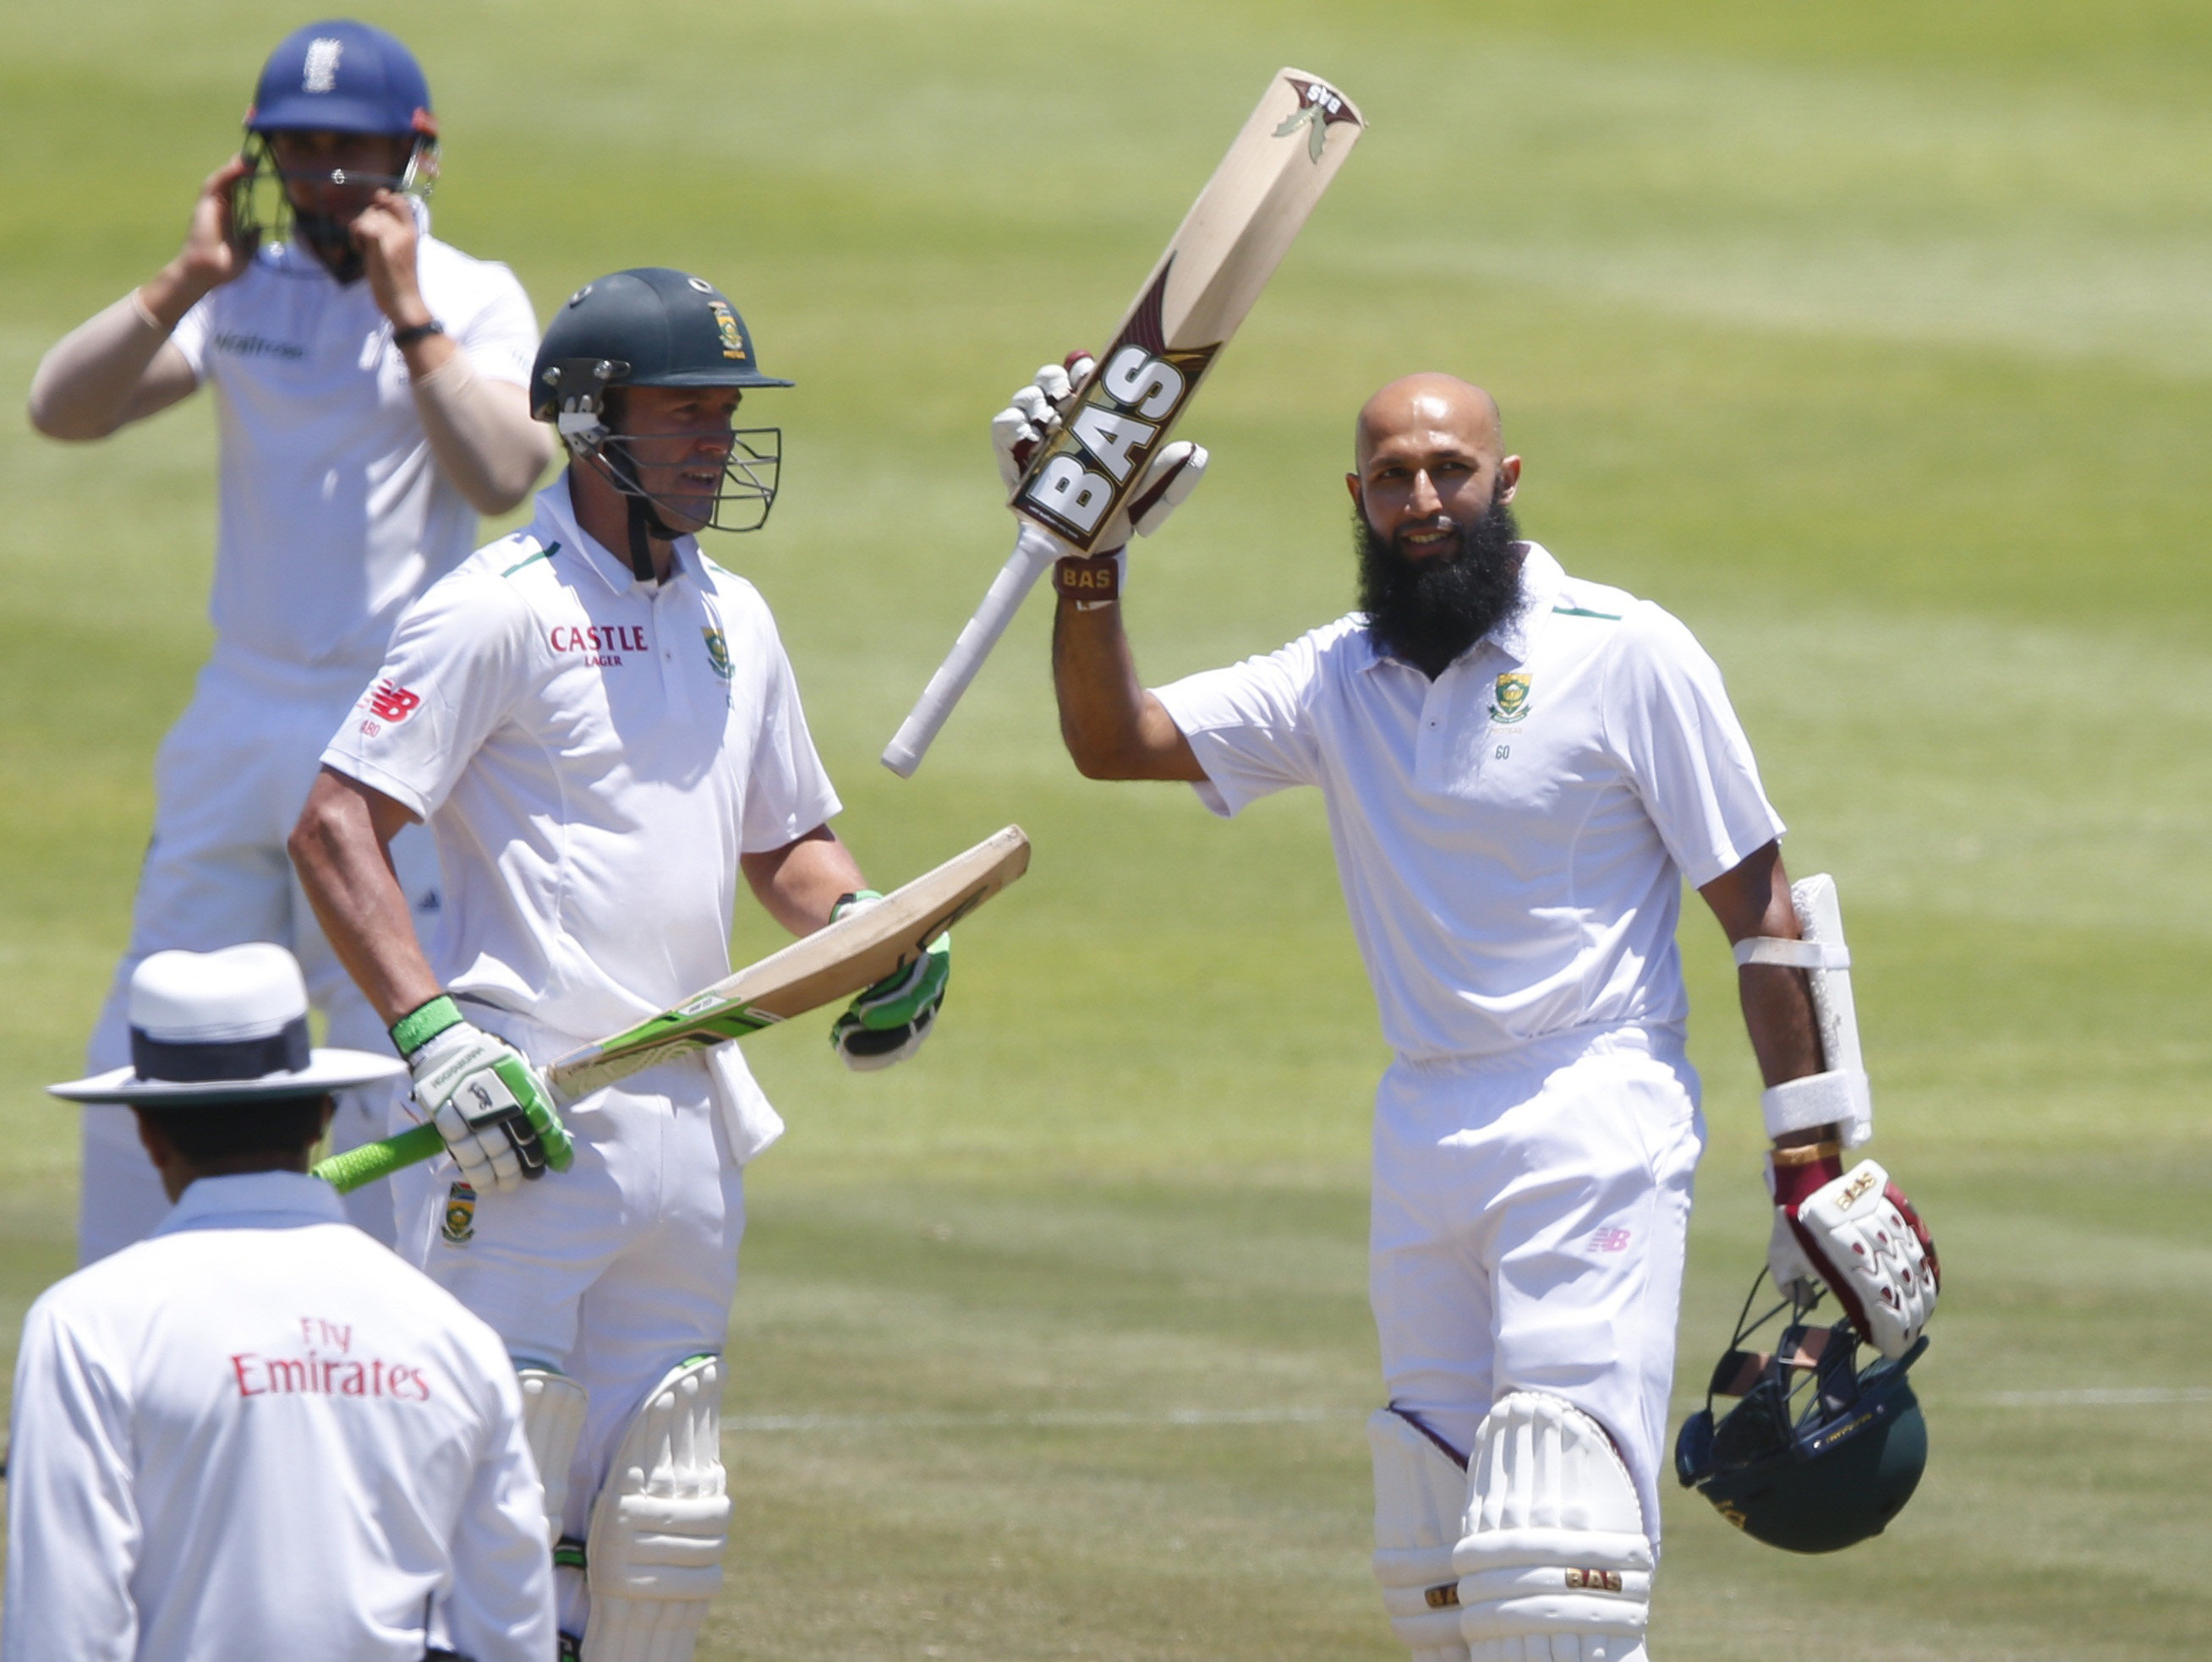 South Africa's Hashim Amla (right) celebrates scoring a century with AB de Villiers during the second cricket test match against England in Cape Town, South Africa, January 4, 2016. Photo: Reuters